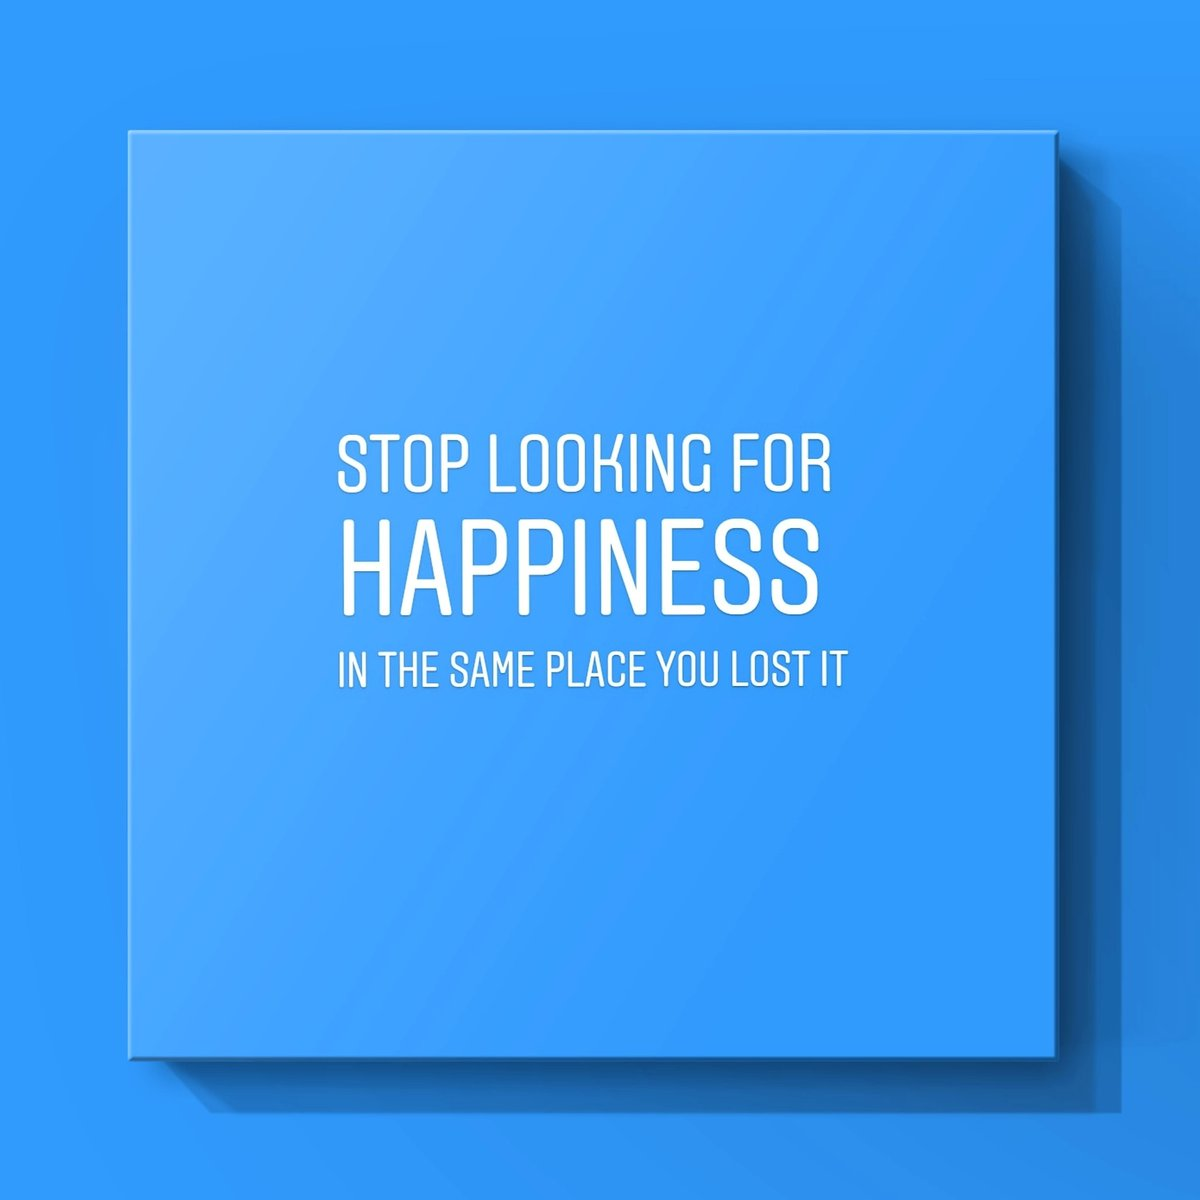 Stop looking for happiness in the same place you lost it.  #happiness #mentoring #Motivation #MotivationMonday #rozwojosobisty #motywacja #silowniaumyslupic.twitter.com/vUIbTKQIFX